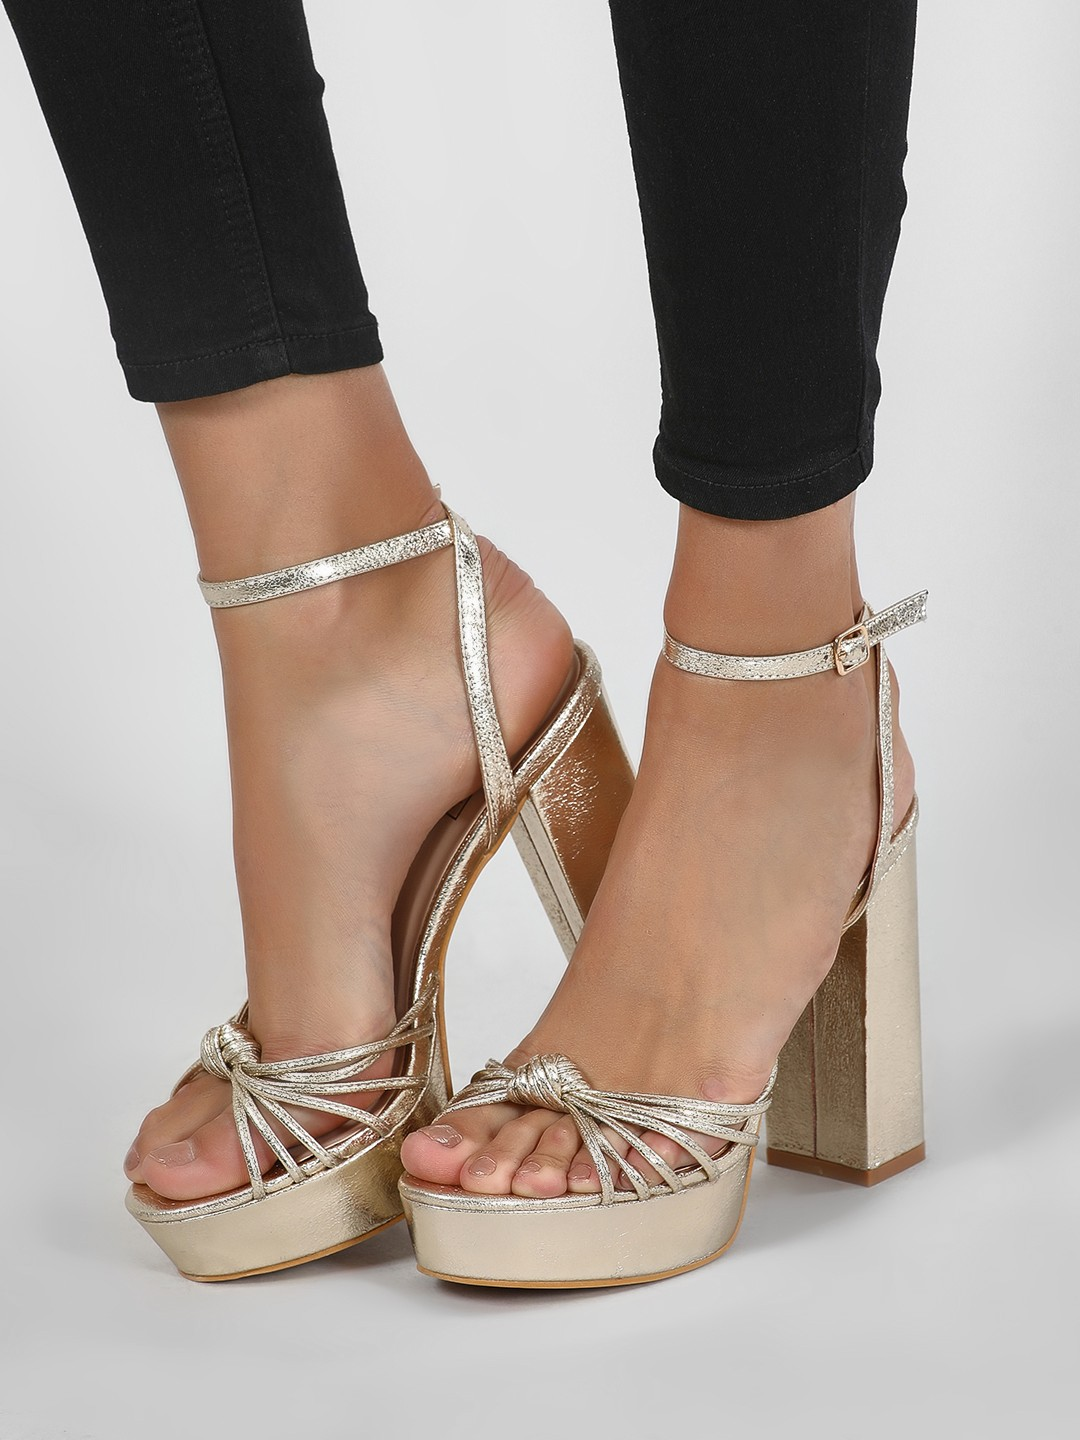 Intoto Gold Platform Sandals With Multiple Knotted Straps 1